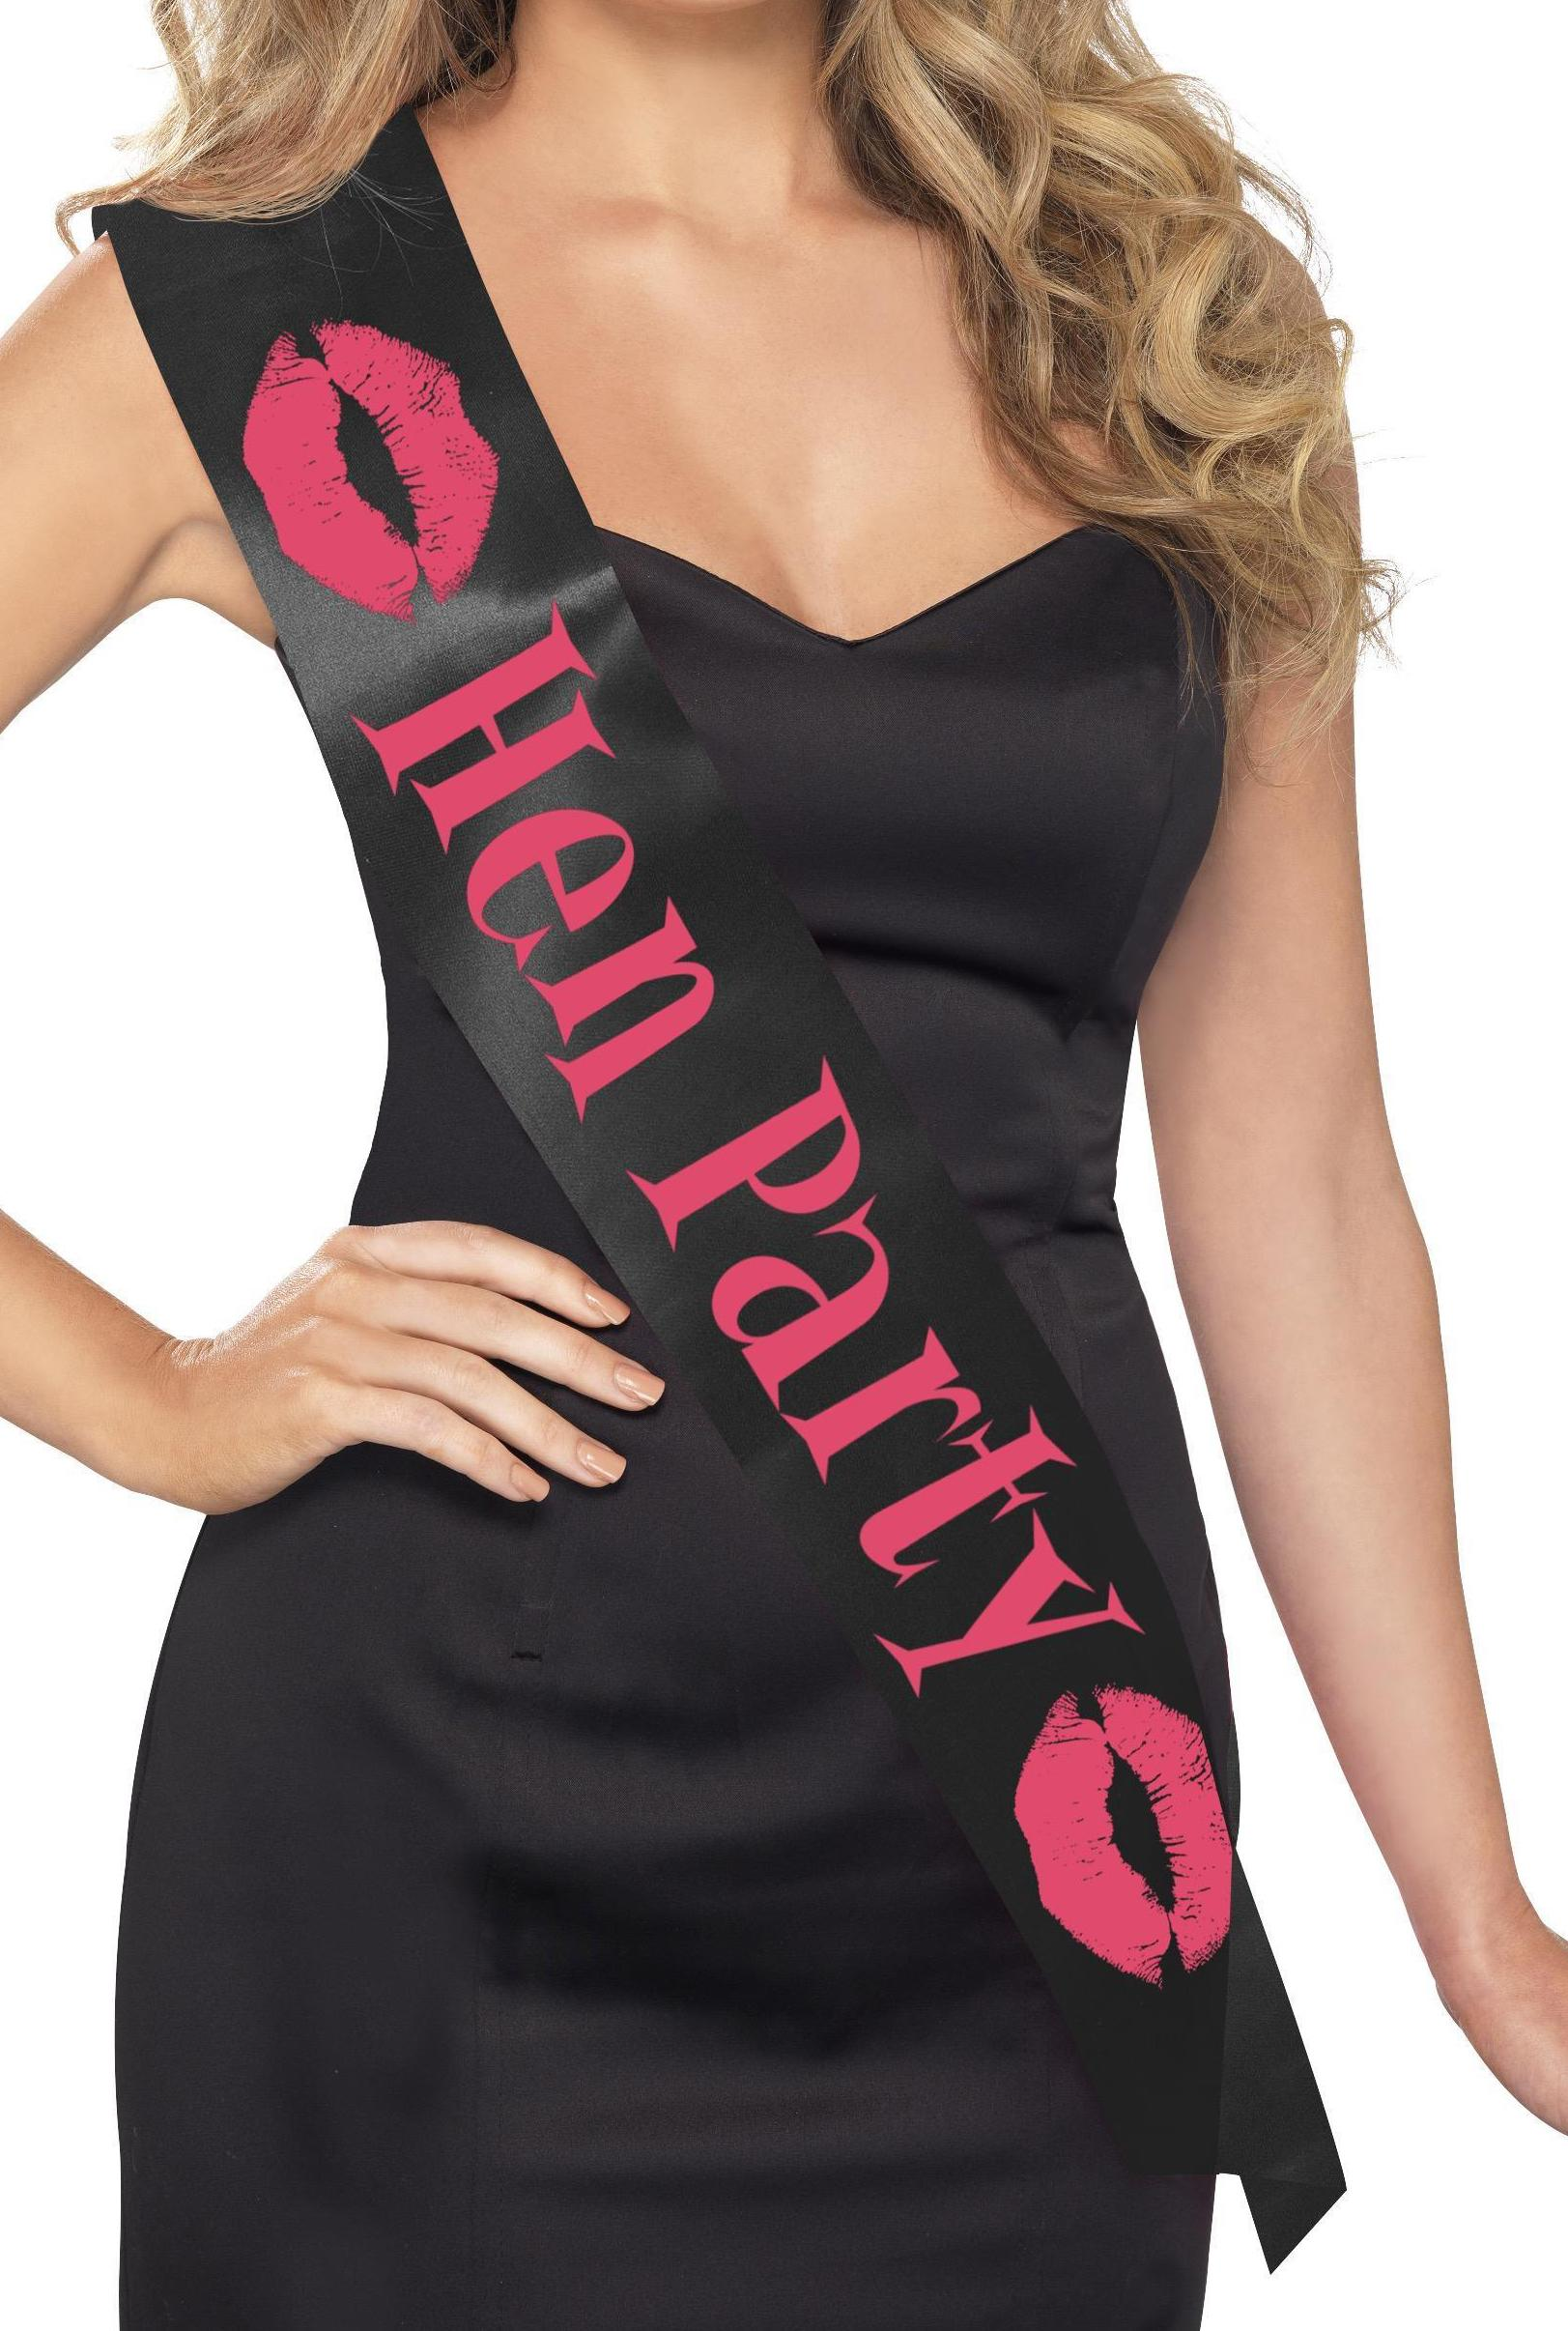 Hen Party Sash Black